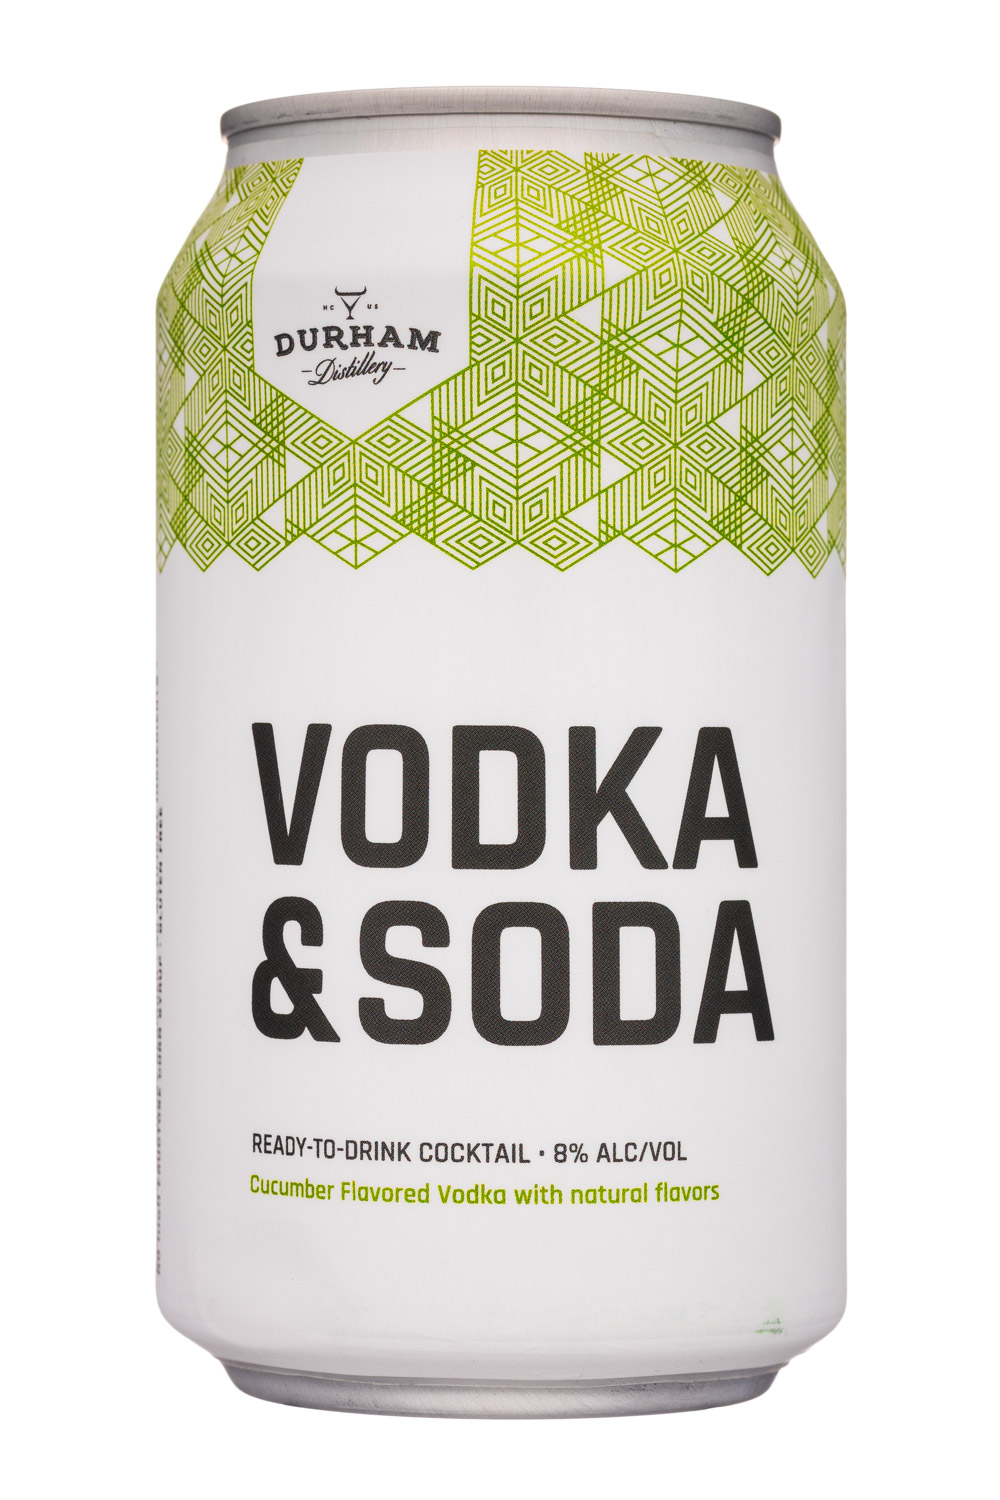 Vodka & Soda